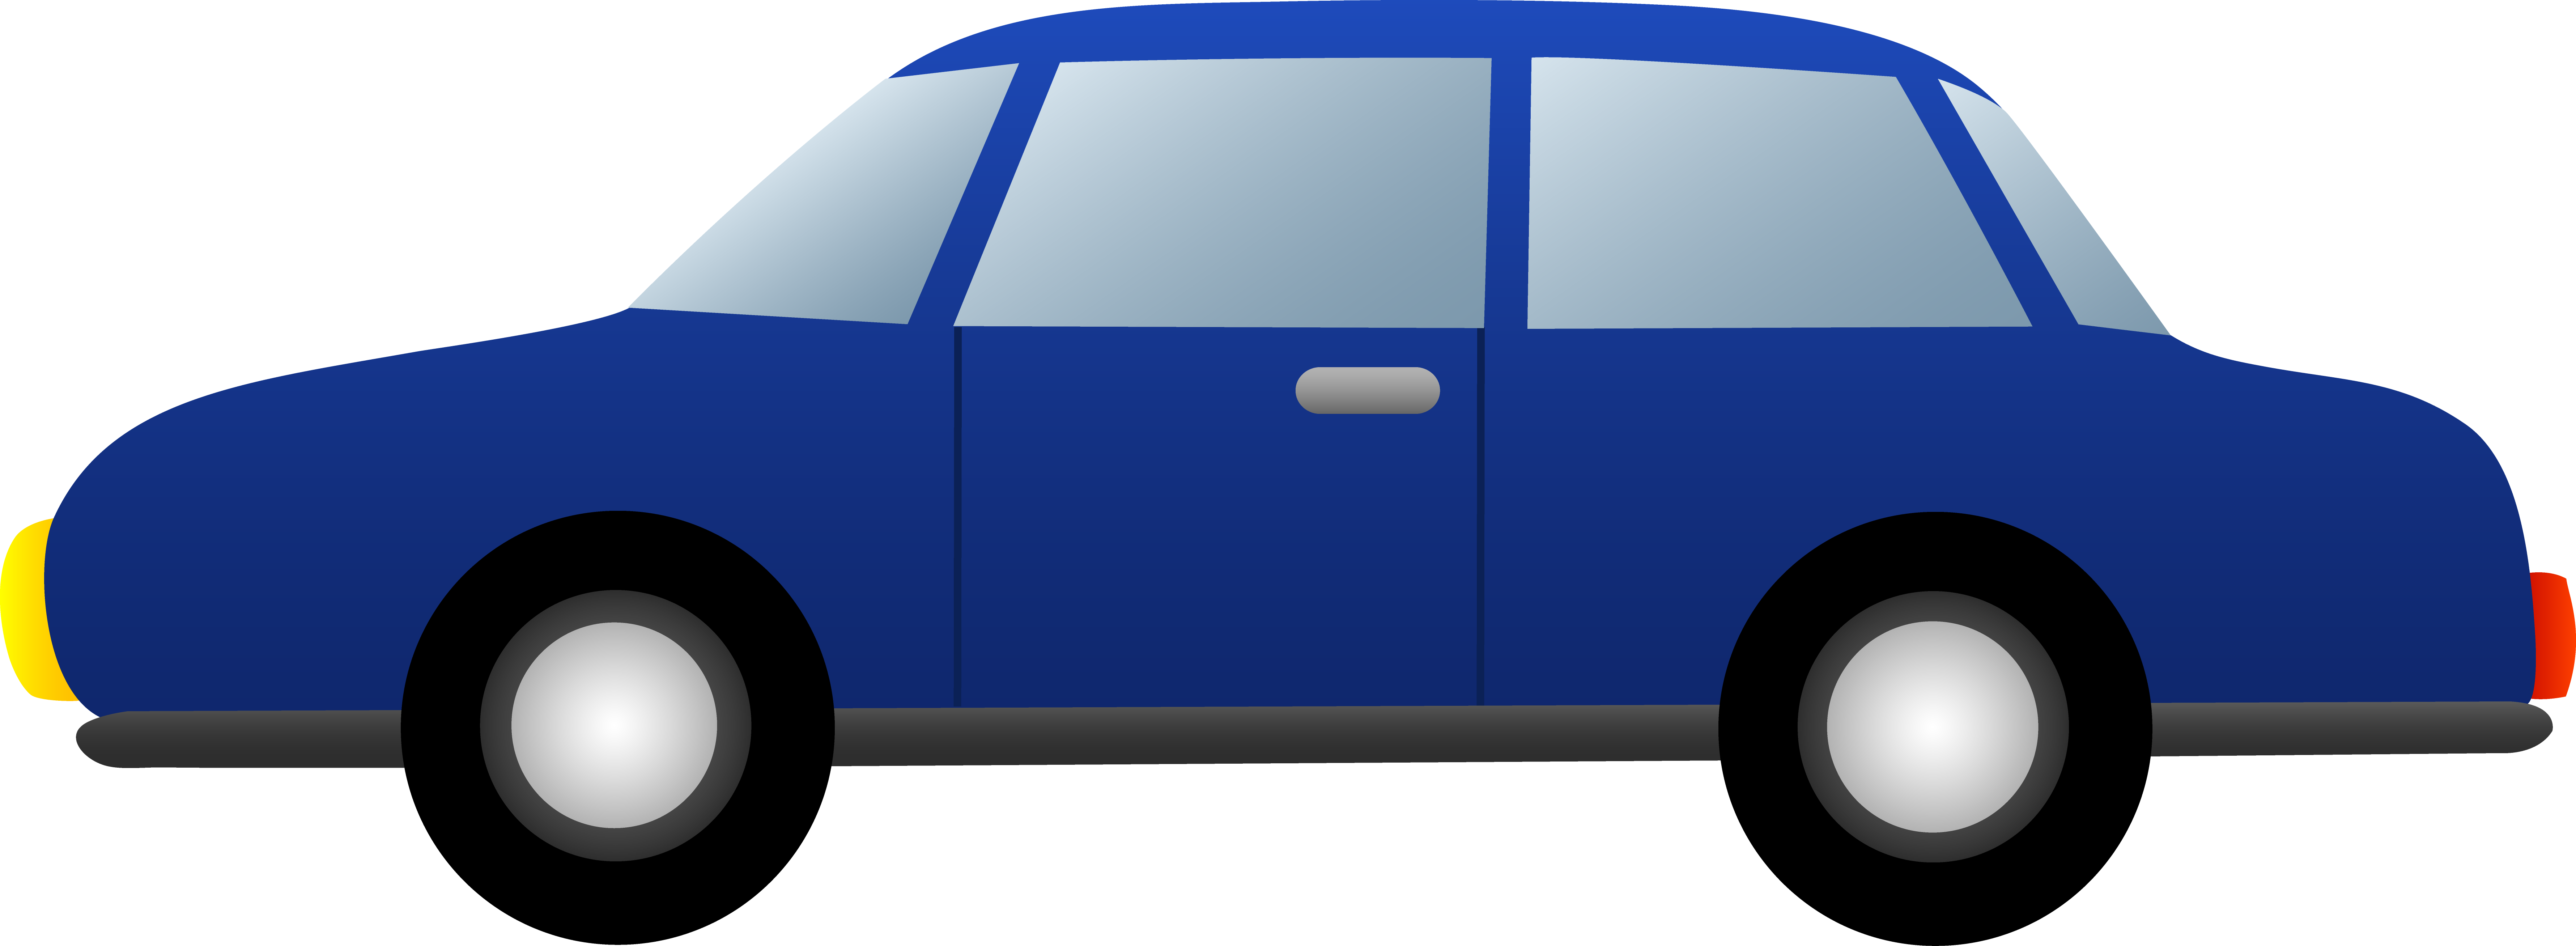 Cars transparent blue. Collection of free acrasy